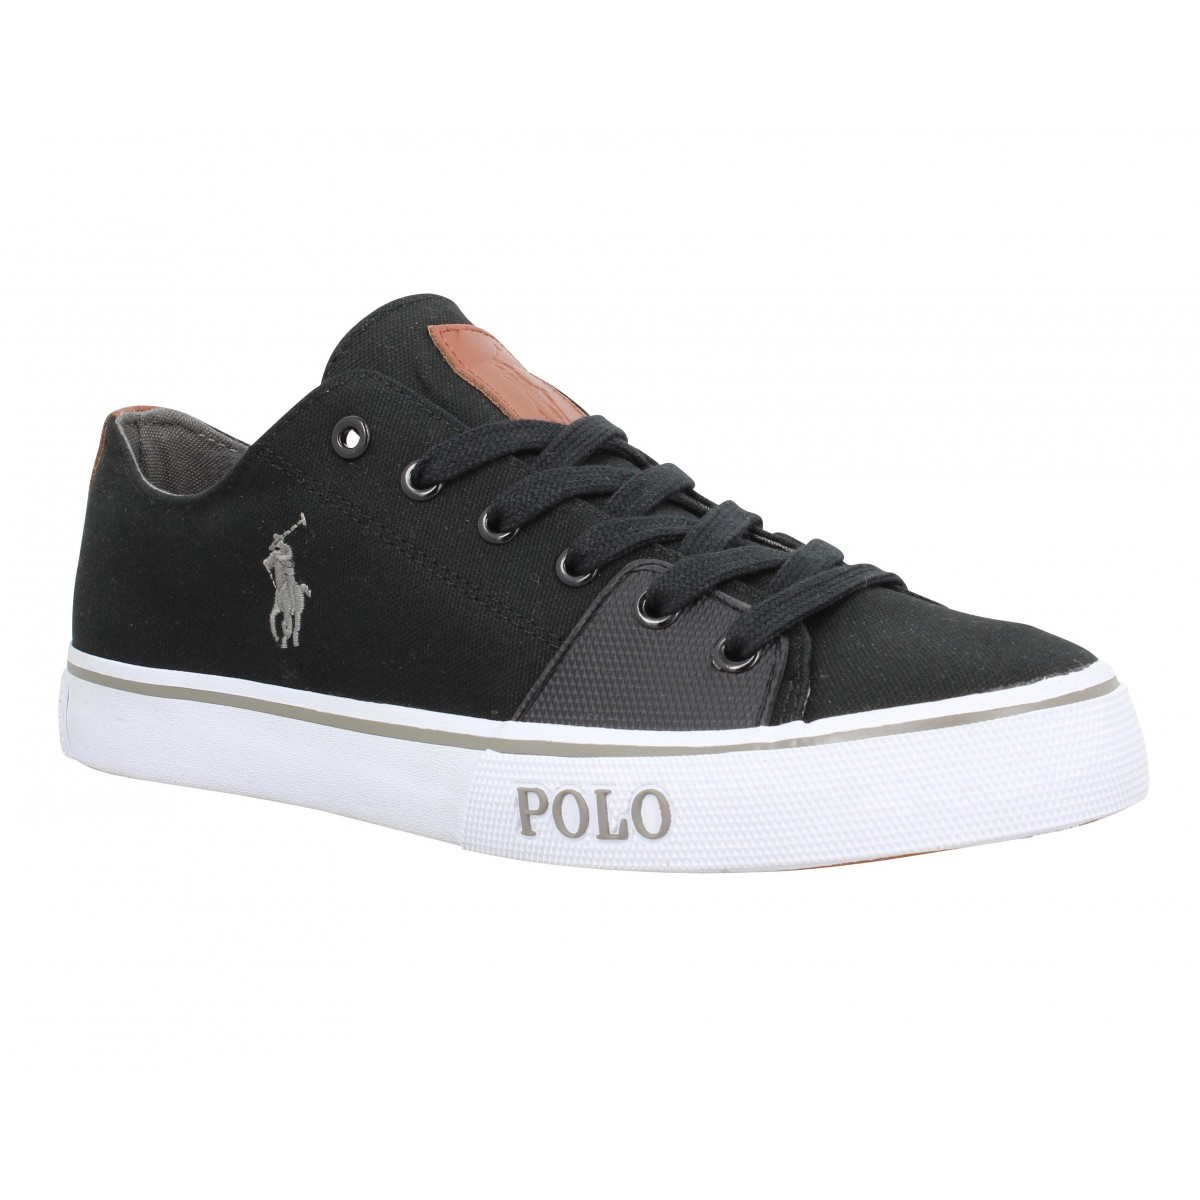 Baskets POLO RALPH LAUREN Cantor Low toile Homme Noir